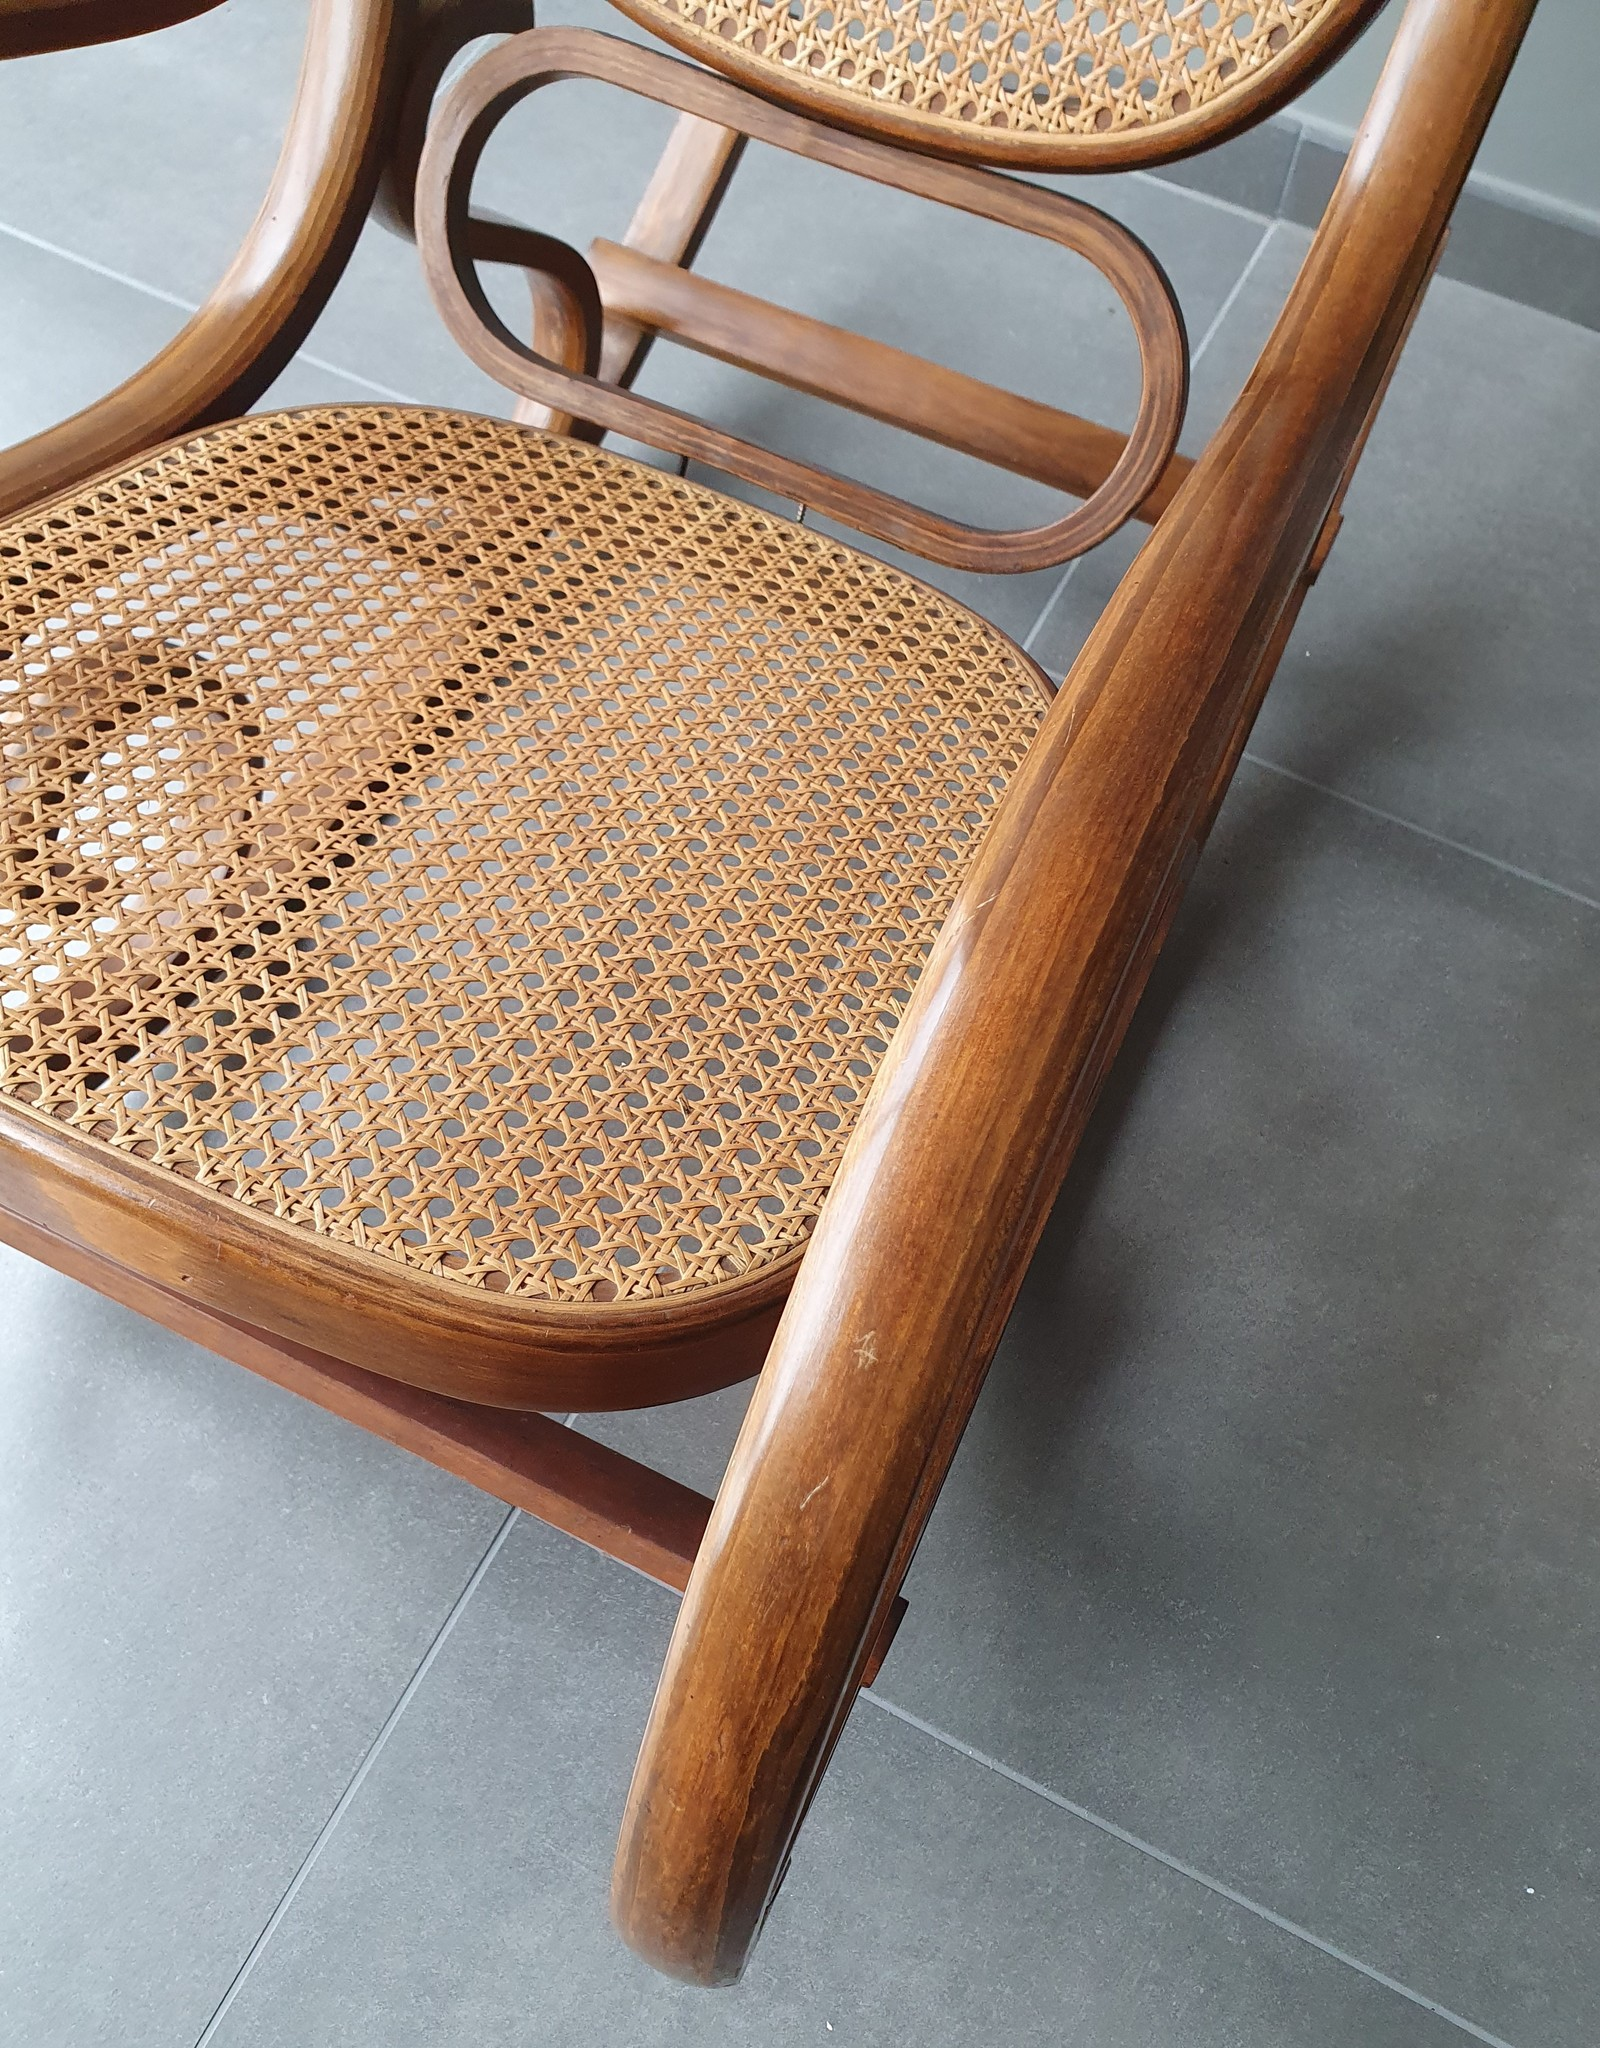 Vintage rocking chair Thonet style, 60-70s